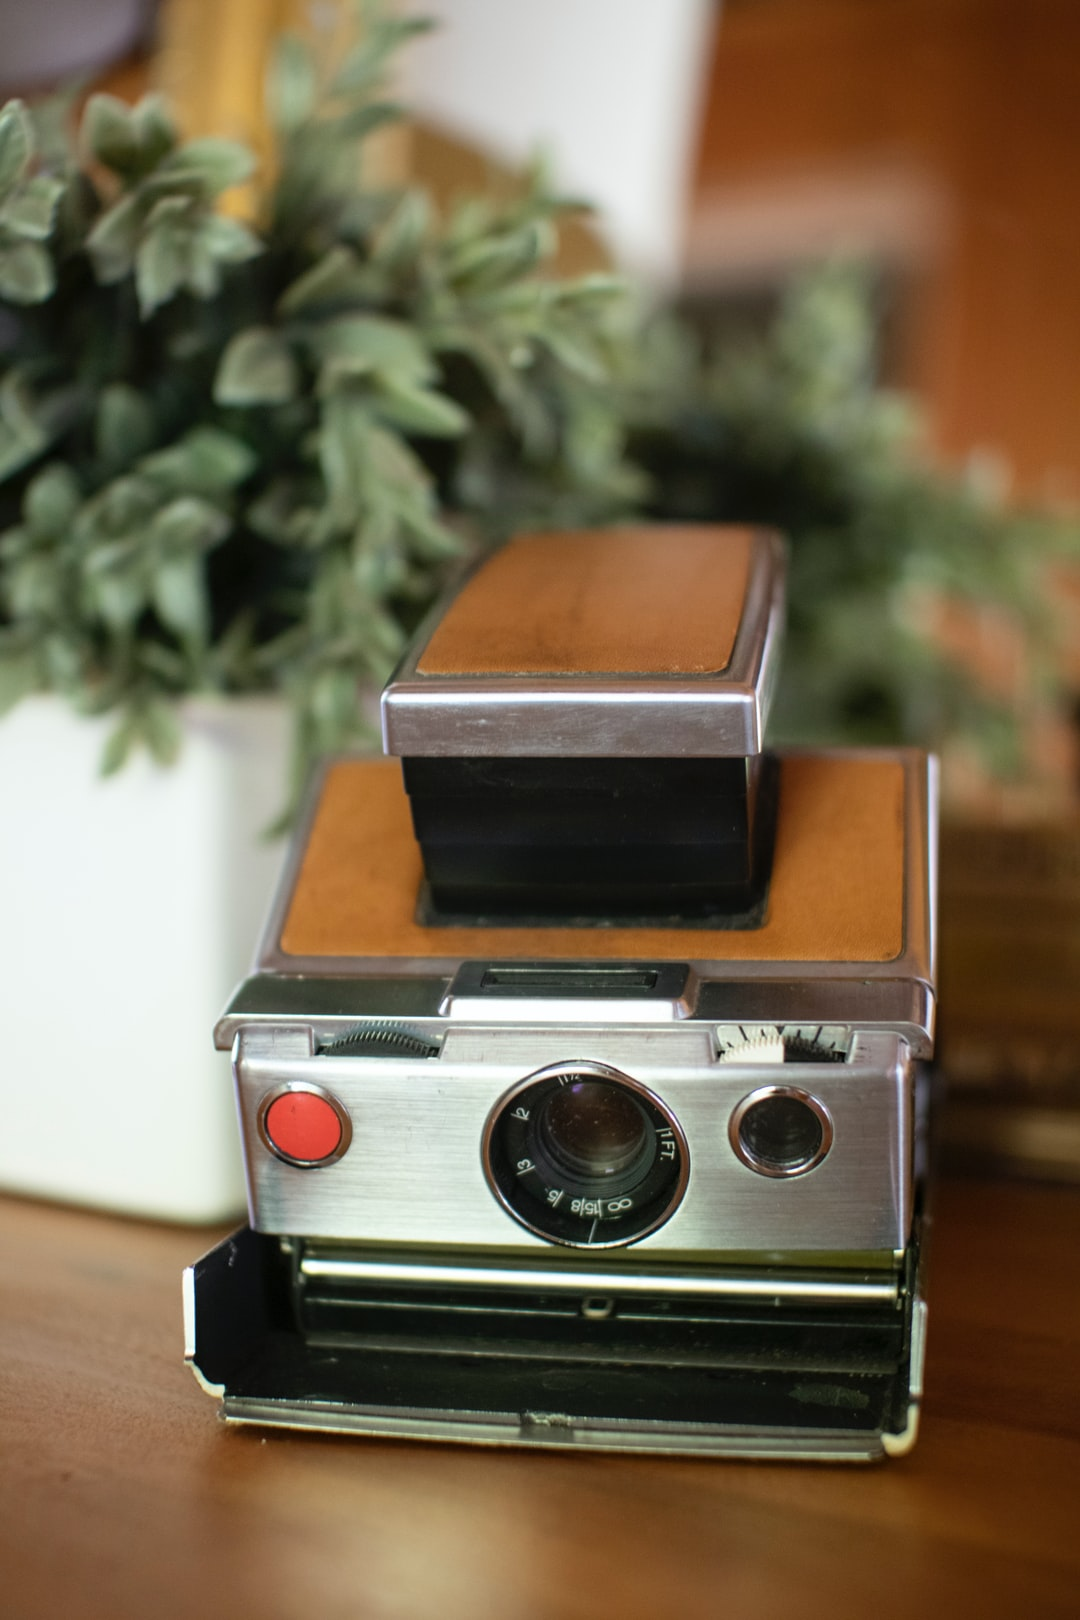 Vintage Polaroid SX-70 retro camera with supple brown cow hide and chrome metal details sits atop a wooden table, next to a potted green plant.